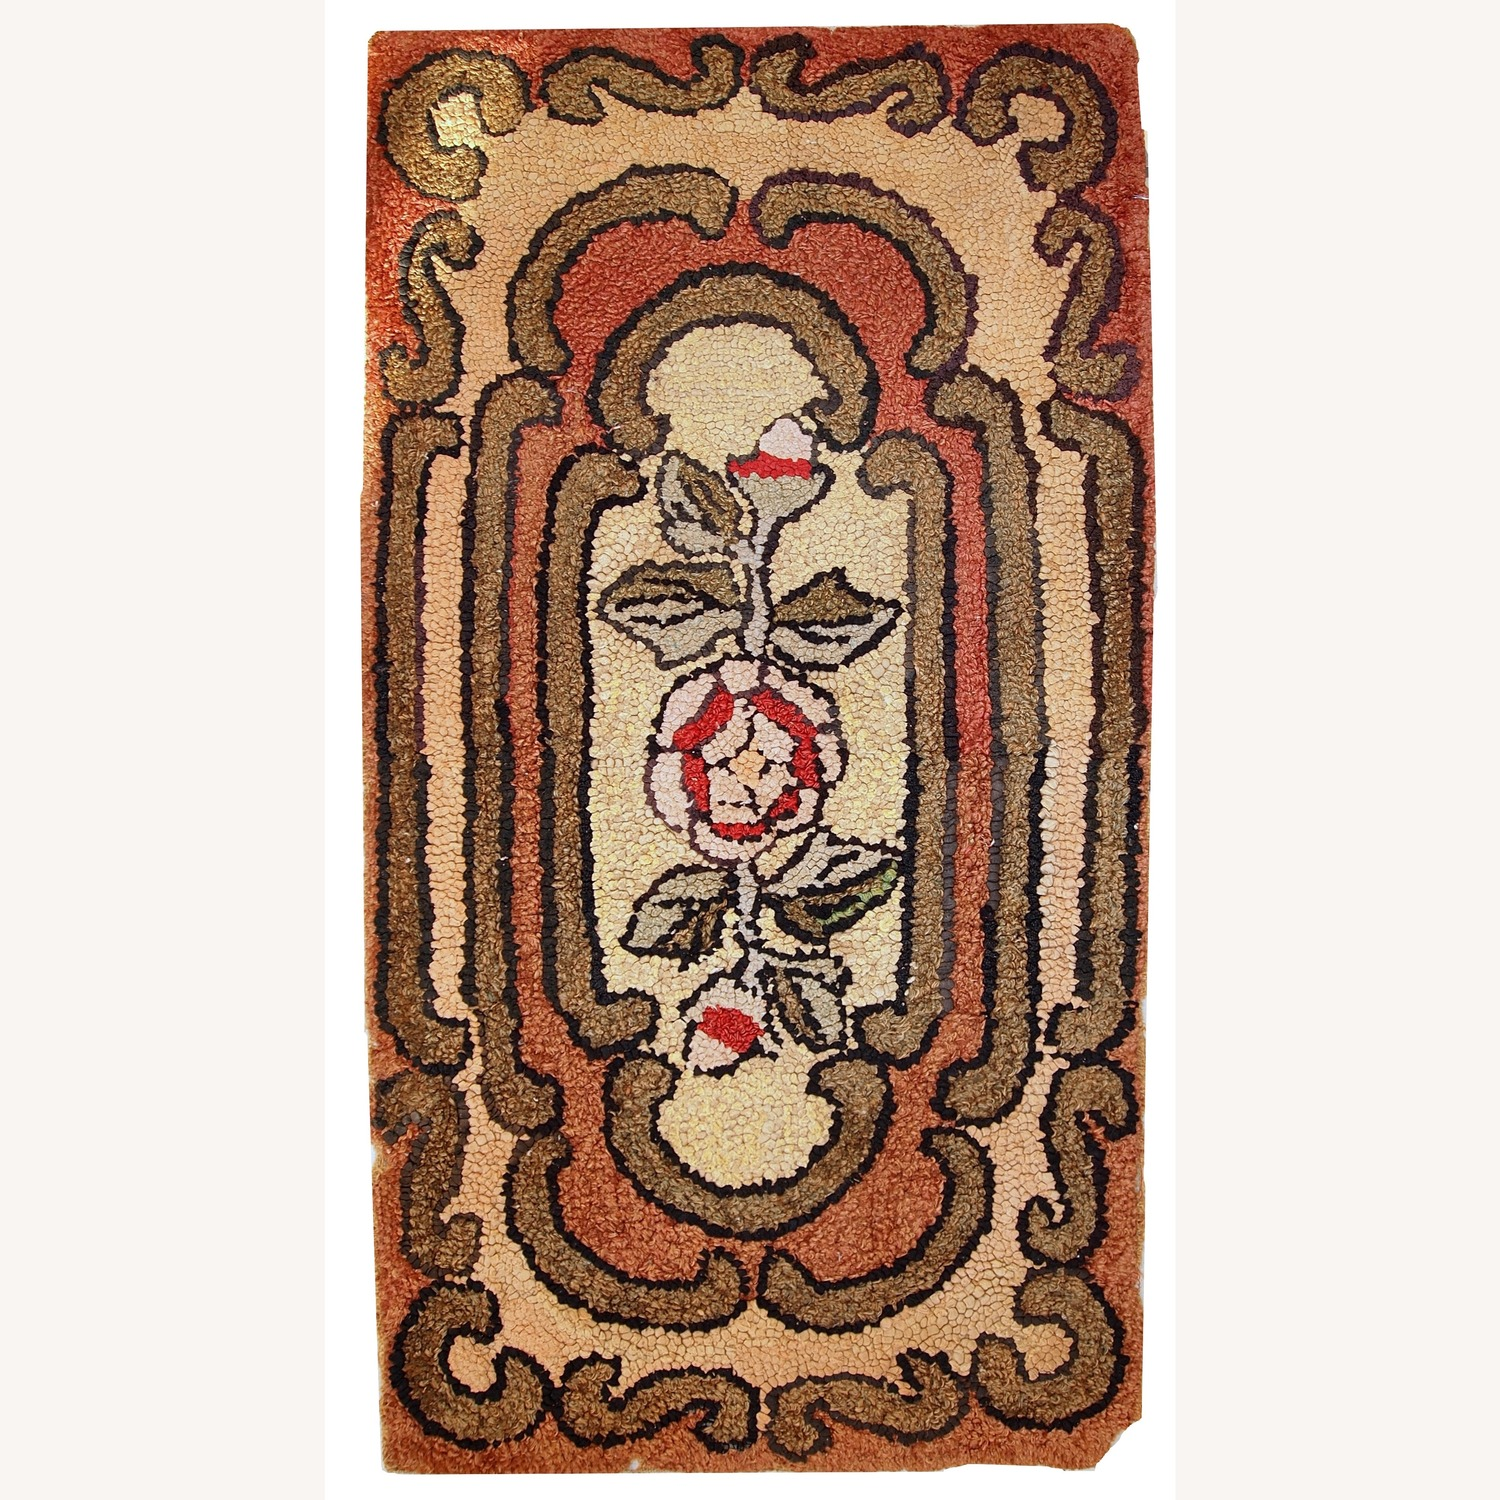 Handmade Antique American Hooked Rug - image-1